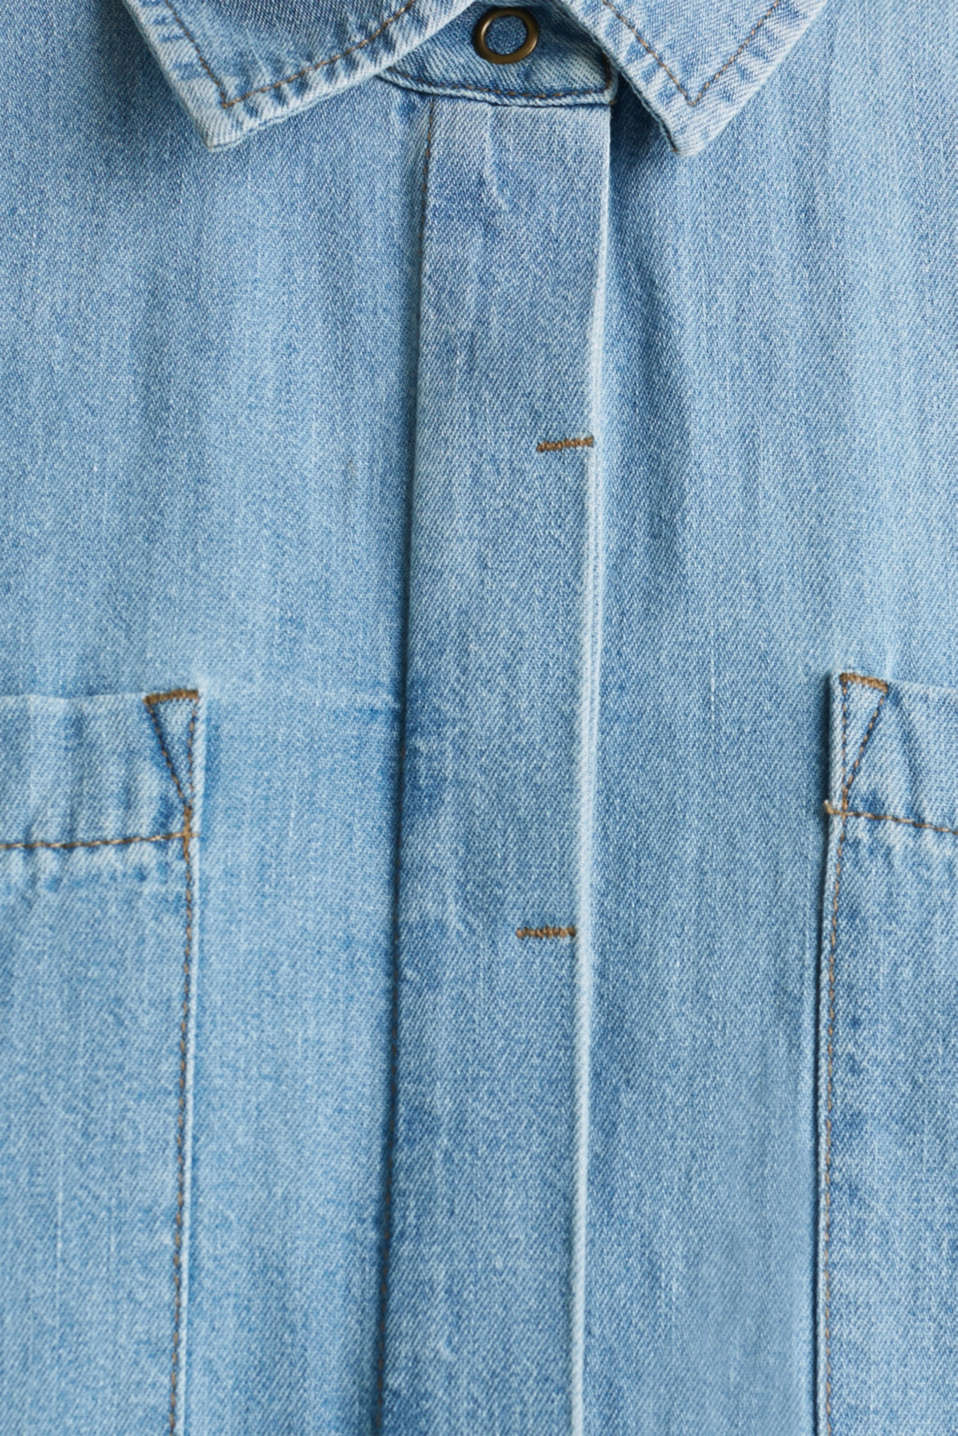 100% cotton denim shirt dress, BLUE LIGHT WASH, detail image number 4